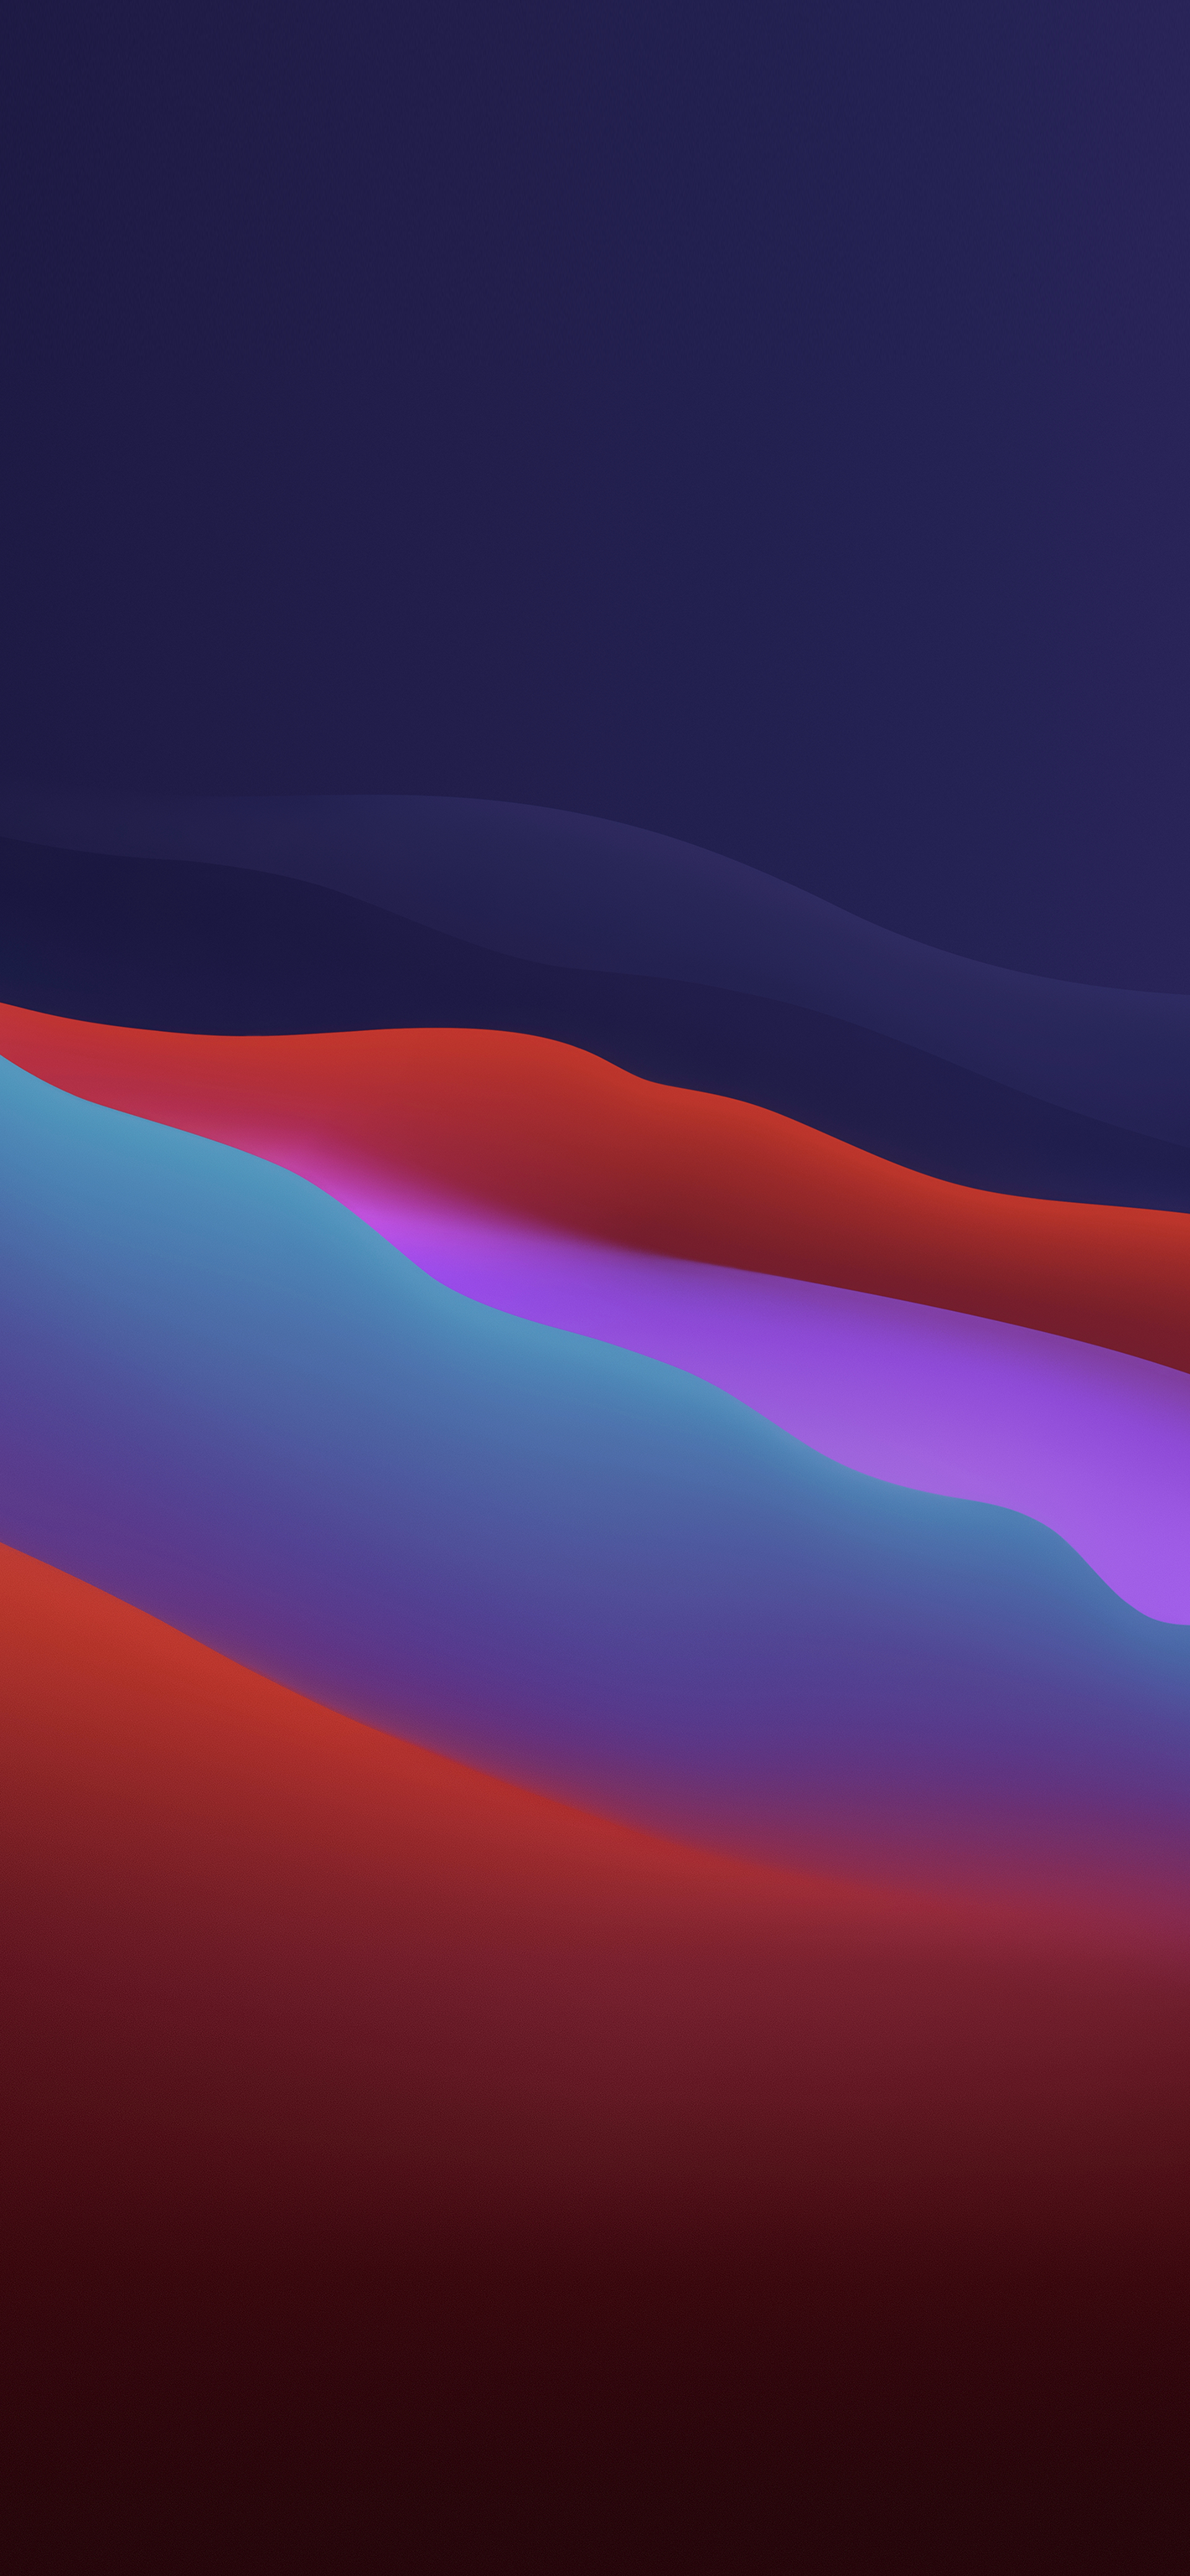 Macos Big Sur Stock Wallpaper Official Wallpaper Abstract Dark Full Quality 5k Wallpapers Central